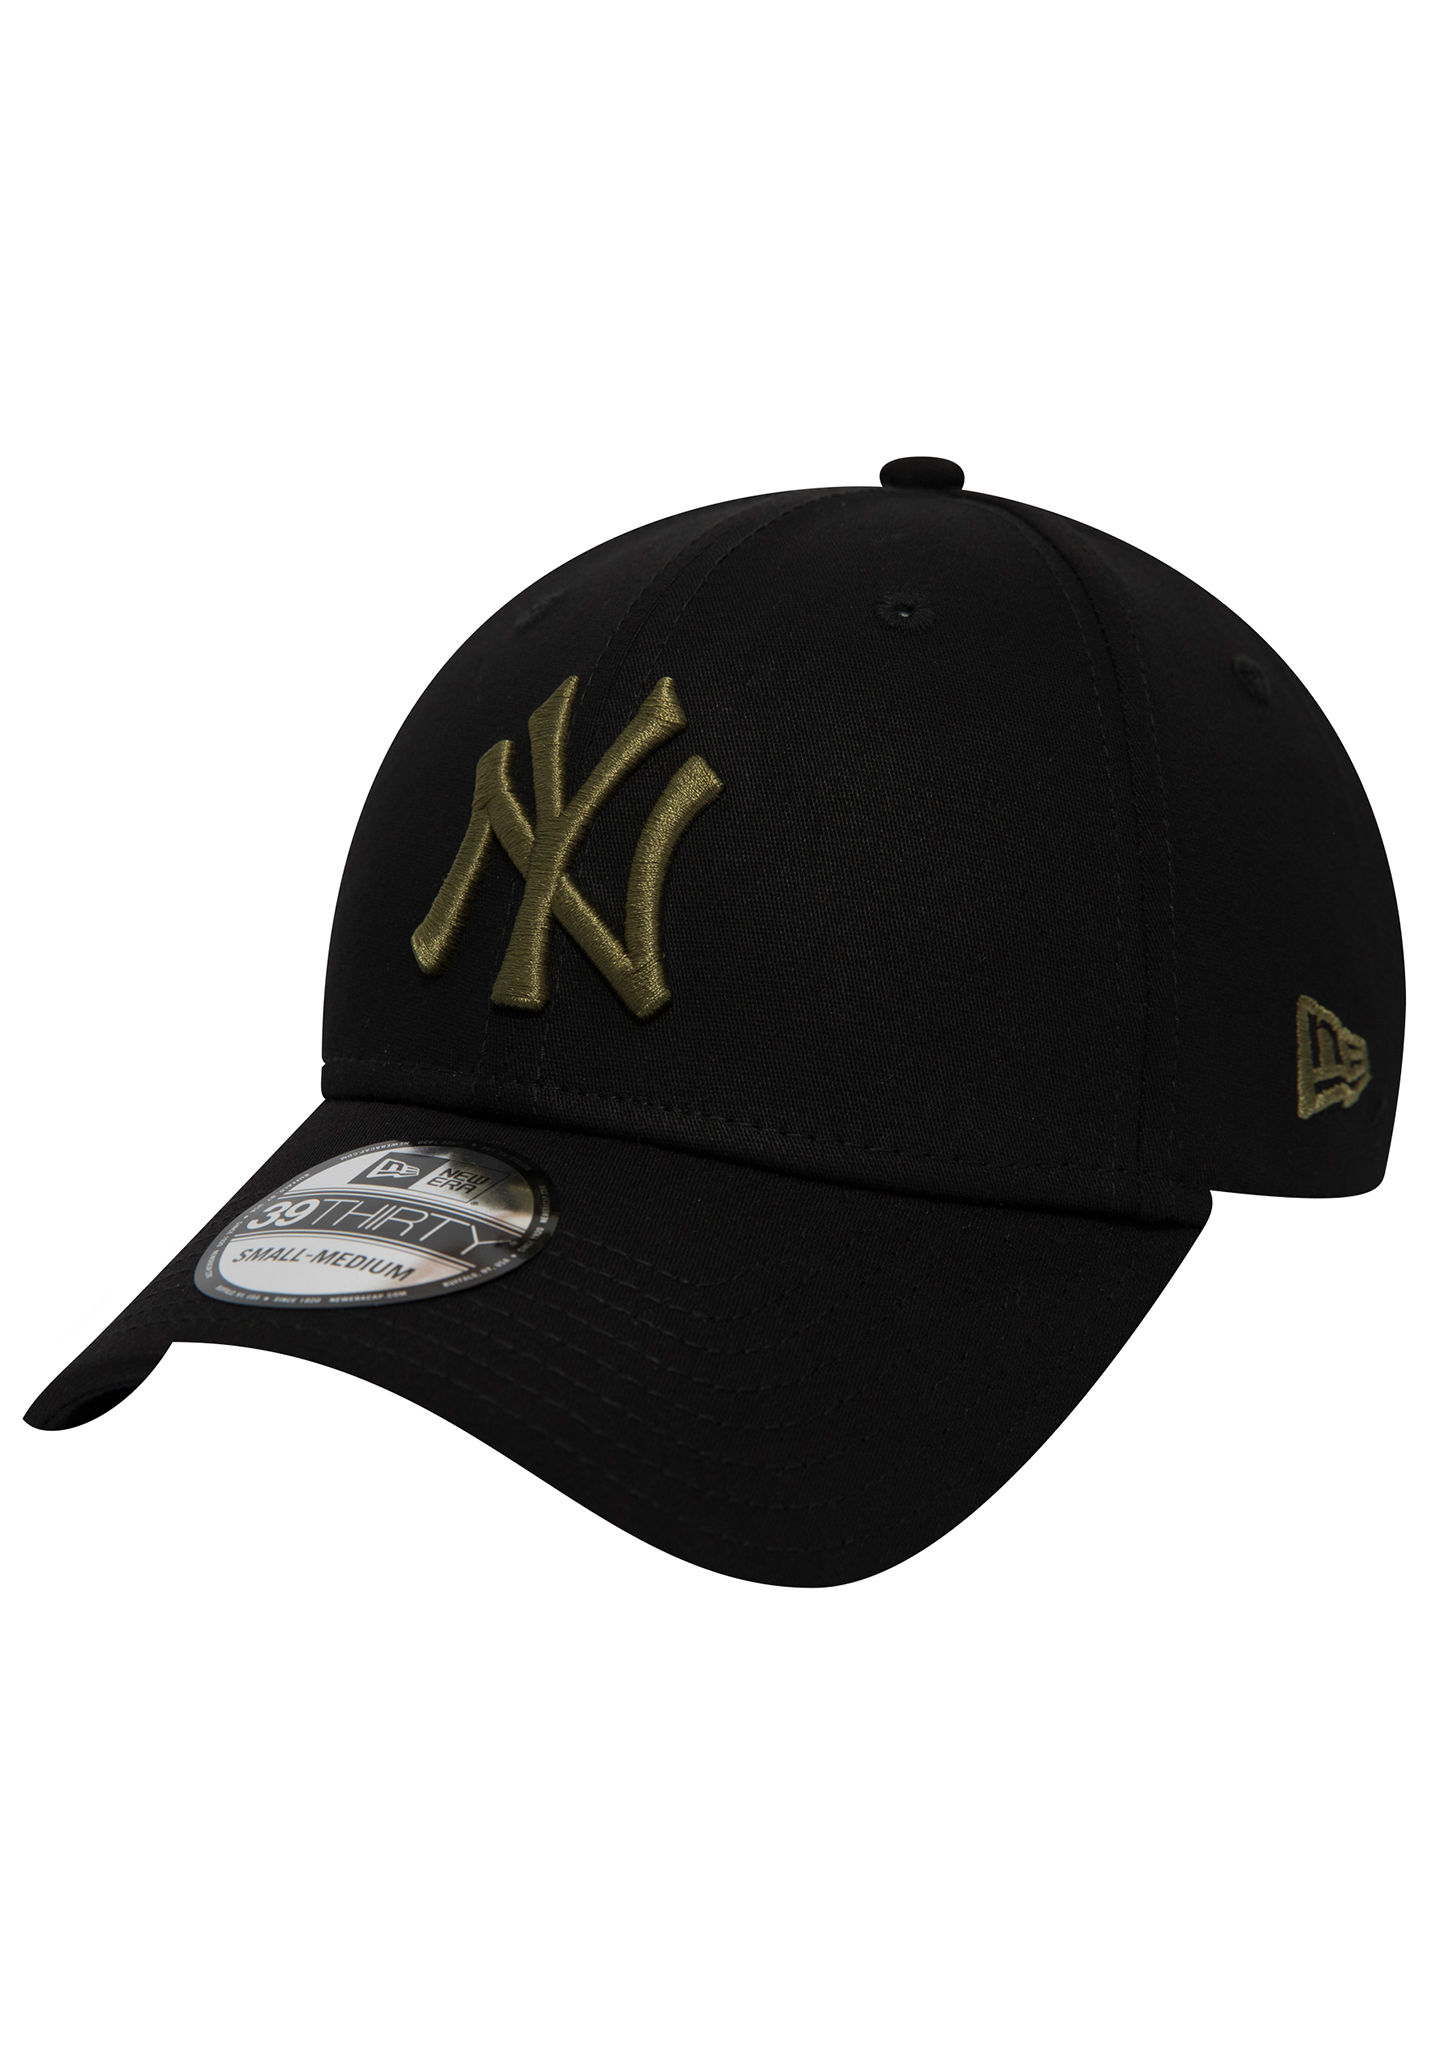 6846a6fd578 NEW Era 39Thirty New York Yankees - Flexfit Cap - Black - Planet Sports